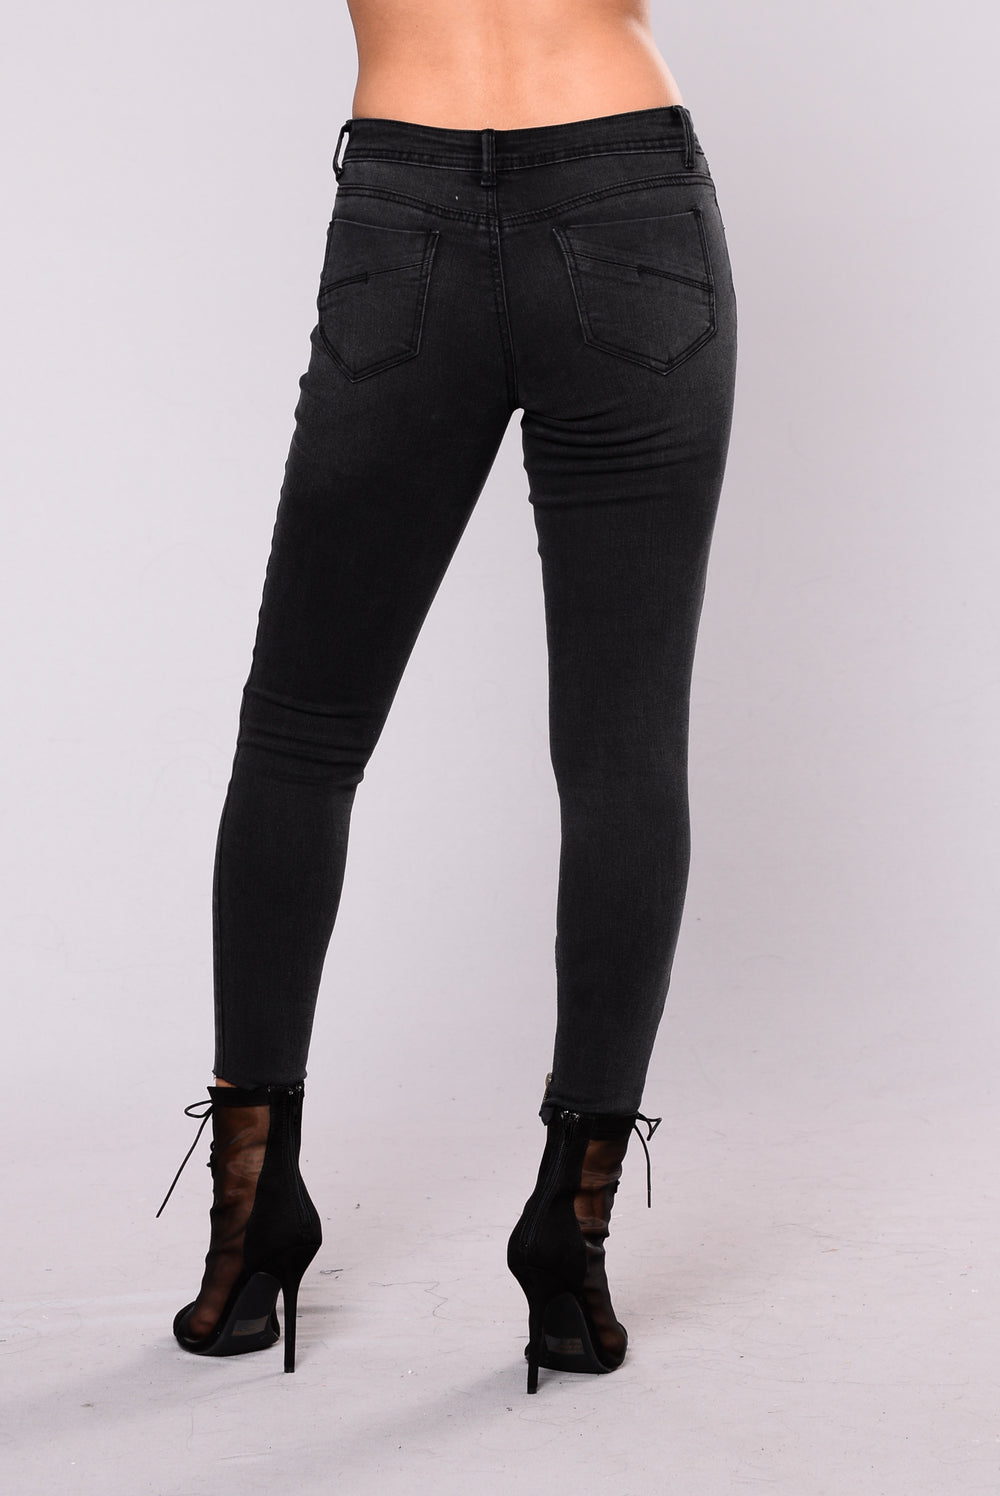 Lasting Treasure Jeans - Black